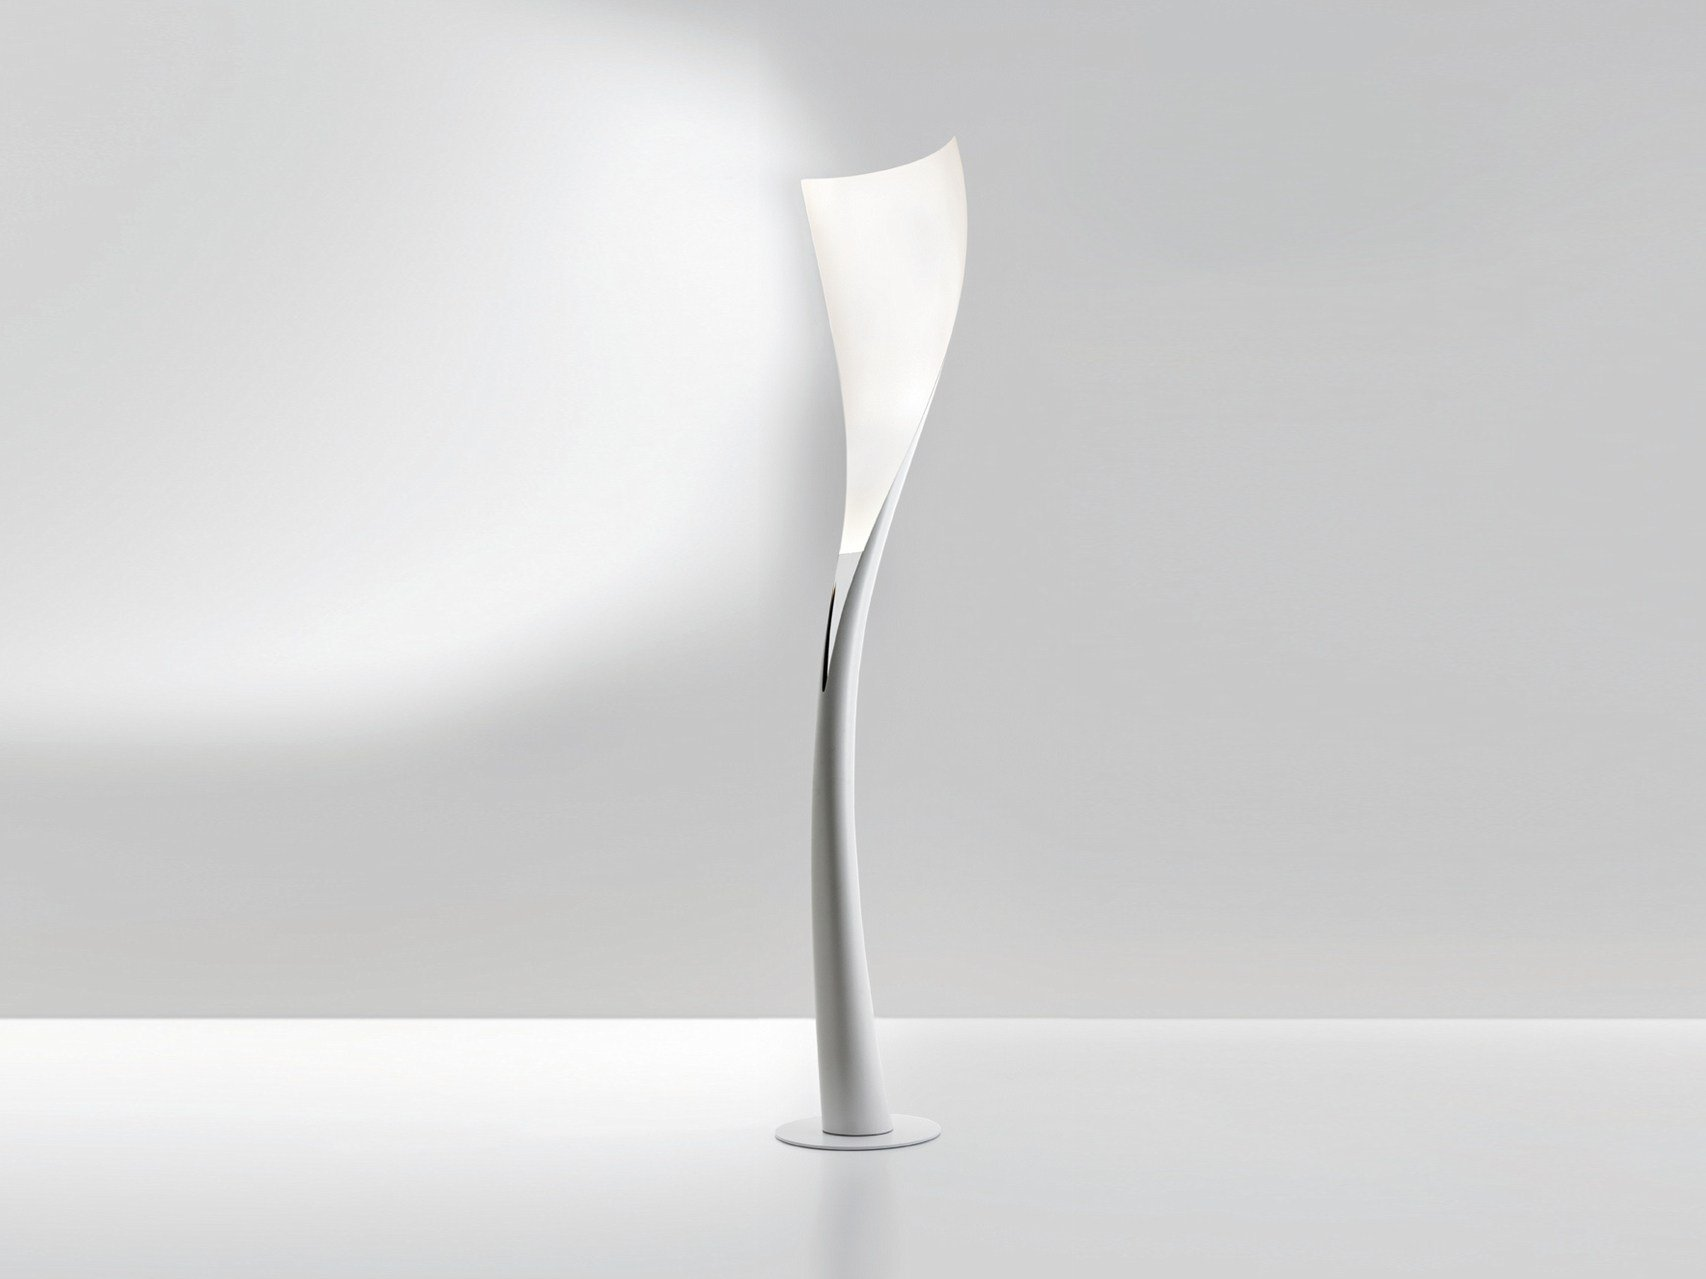 Lampada da terra a led in fibra di vetro solium by artemide design karim rashid - Lampada led design ...